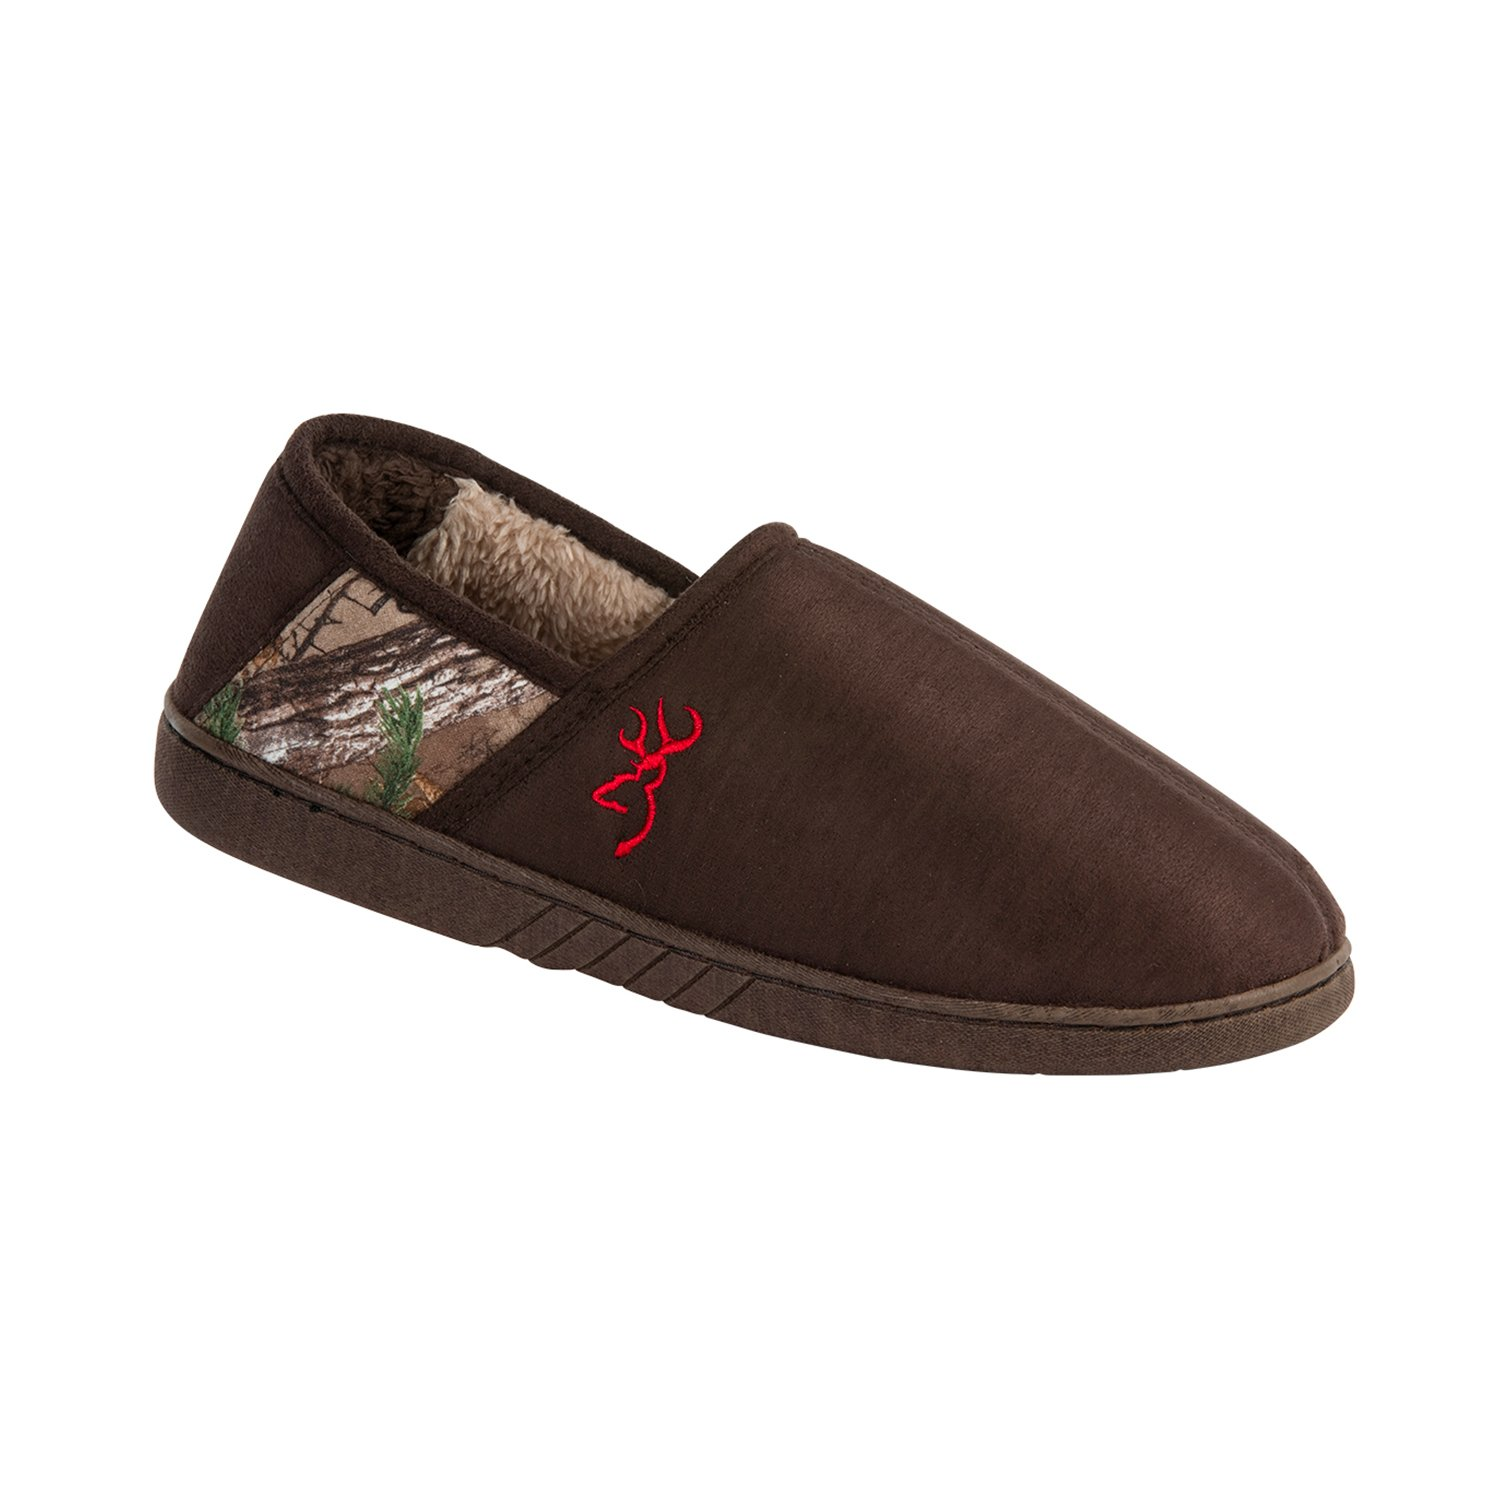 Browning Men's Jake Slipper | Bracken/Realtree Xtra | Size 12 by Browning (Image #1)